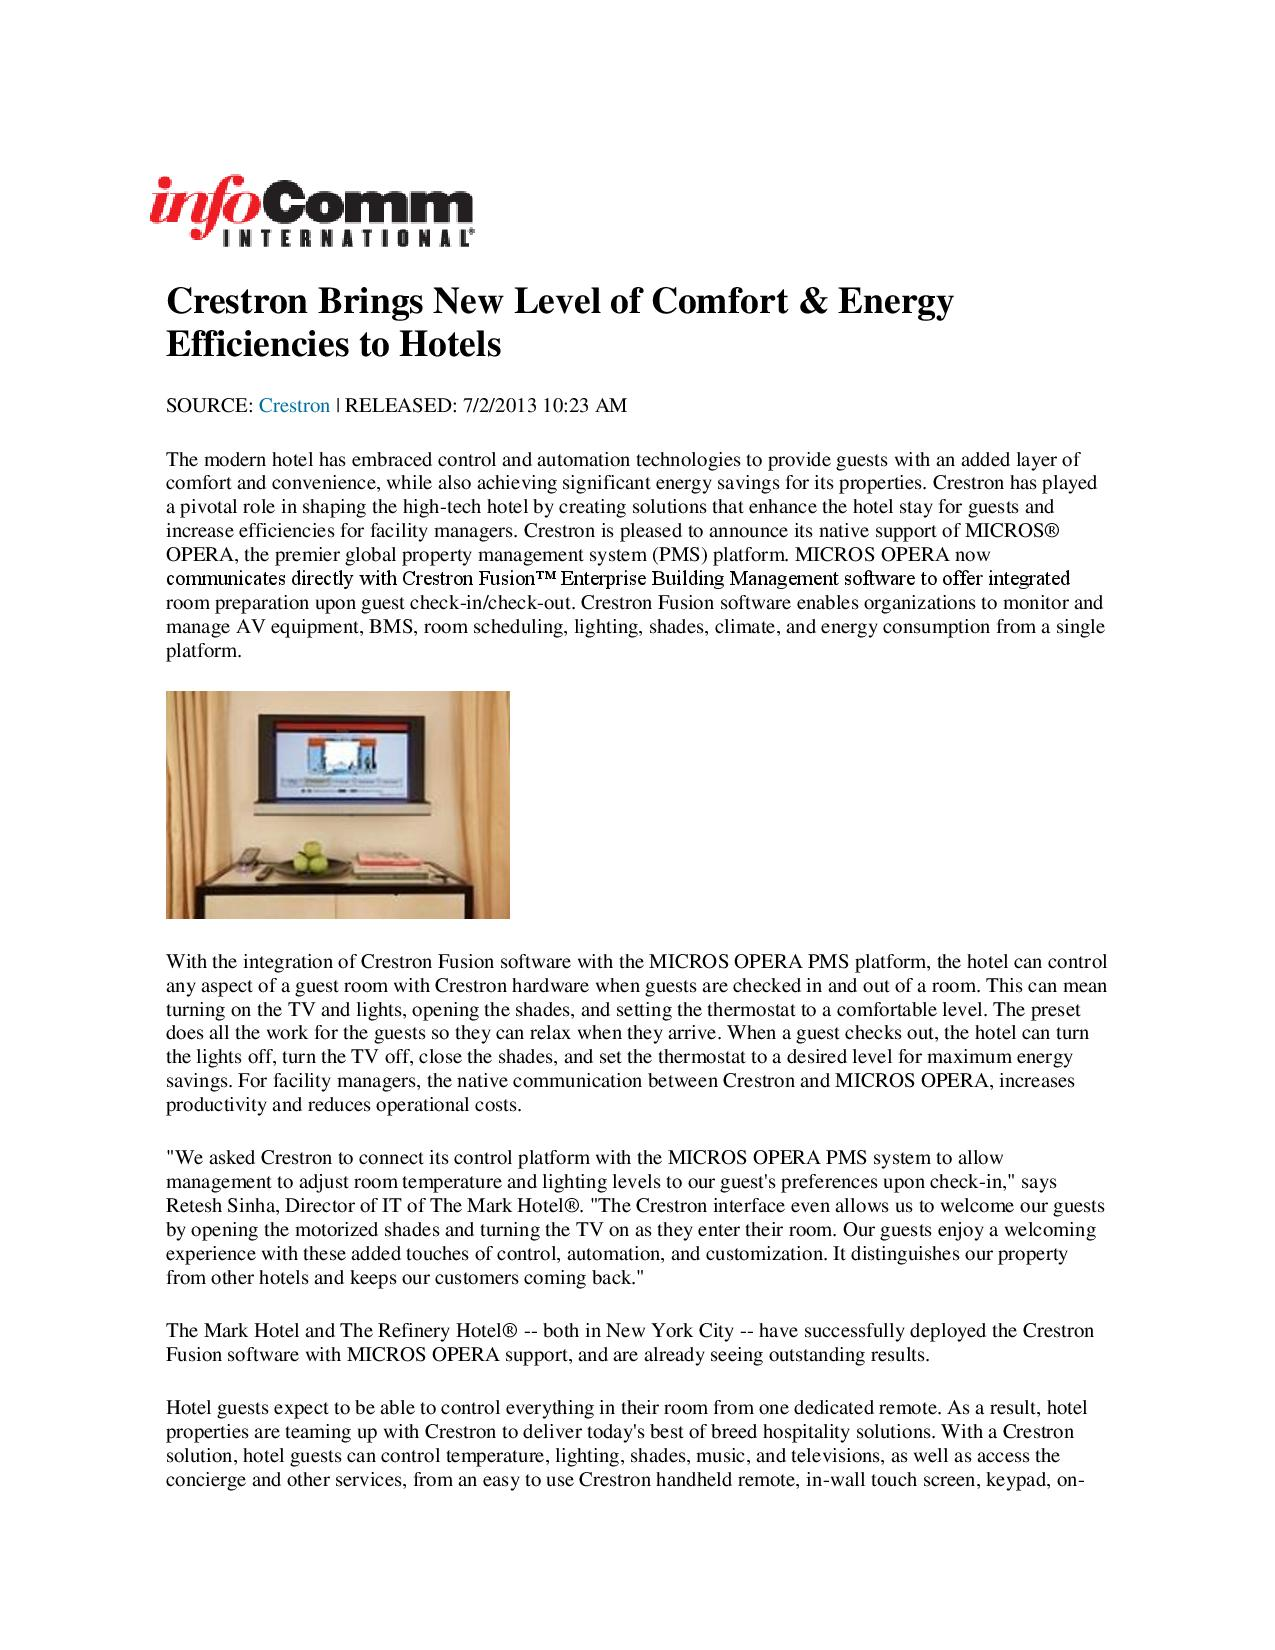 InfoComm International, the Audiovisual (AV) Association Crestron Brings New Level of Comfort & Energy Efficiencies to Hotels-page-001